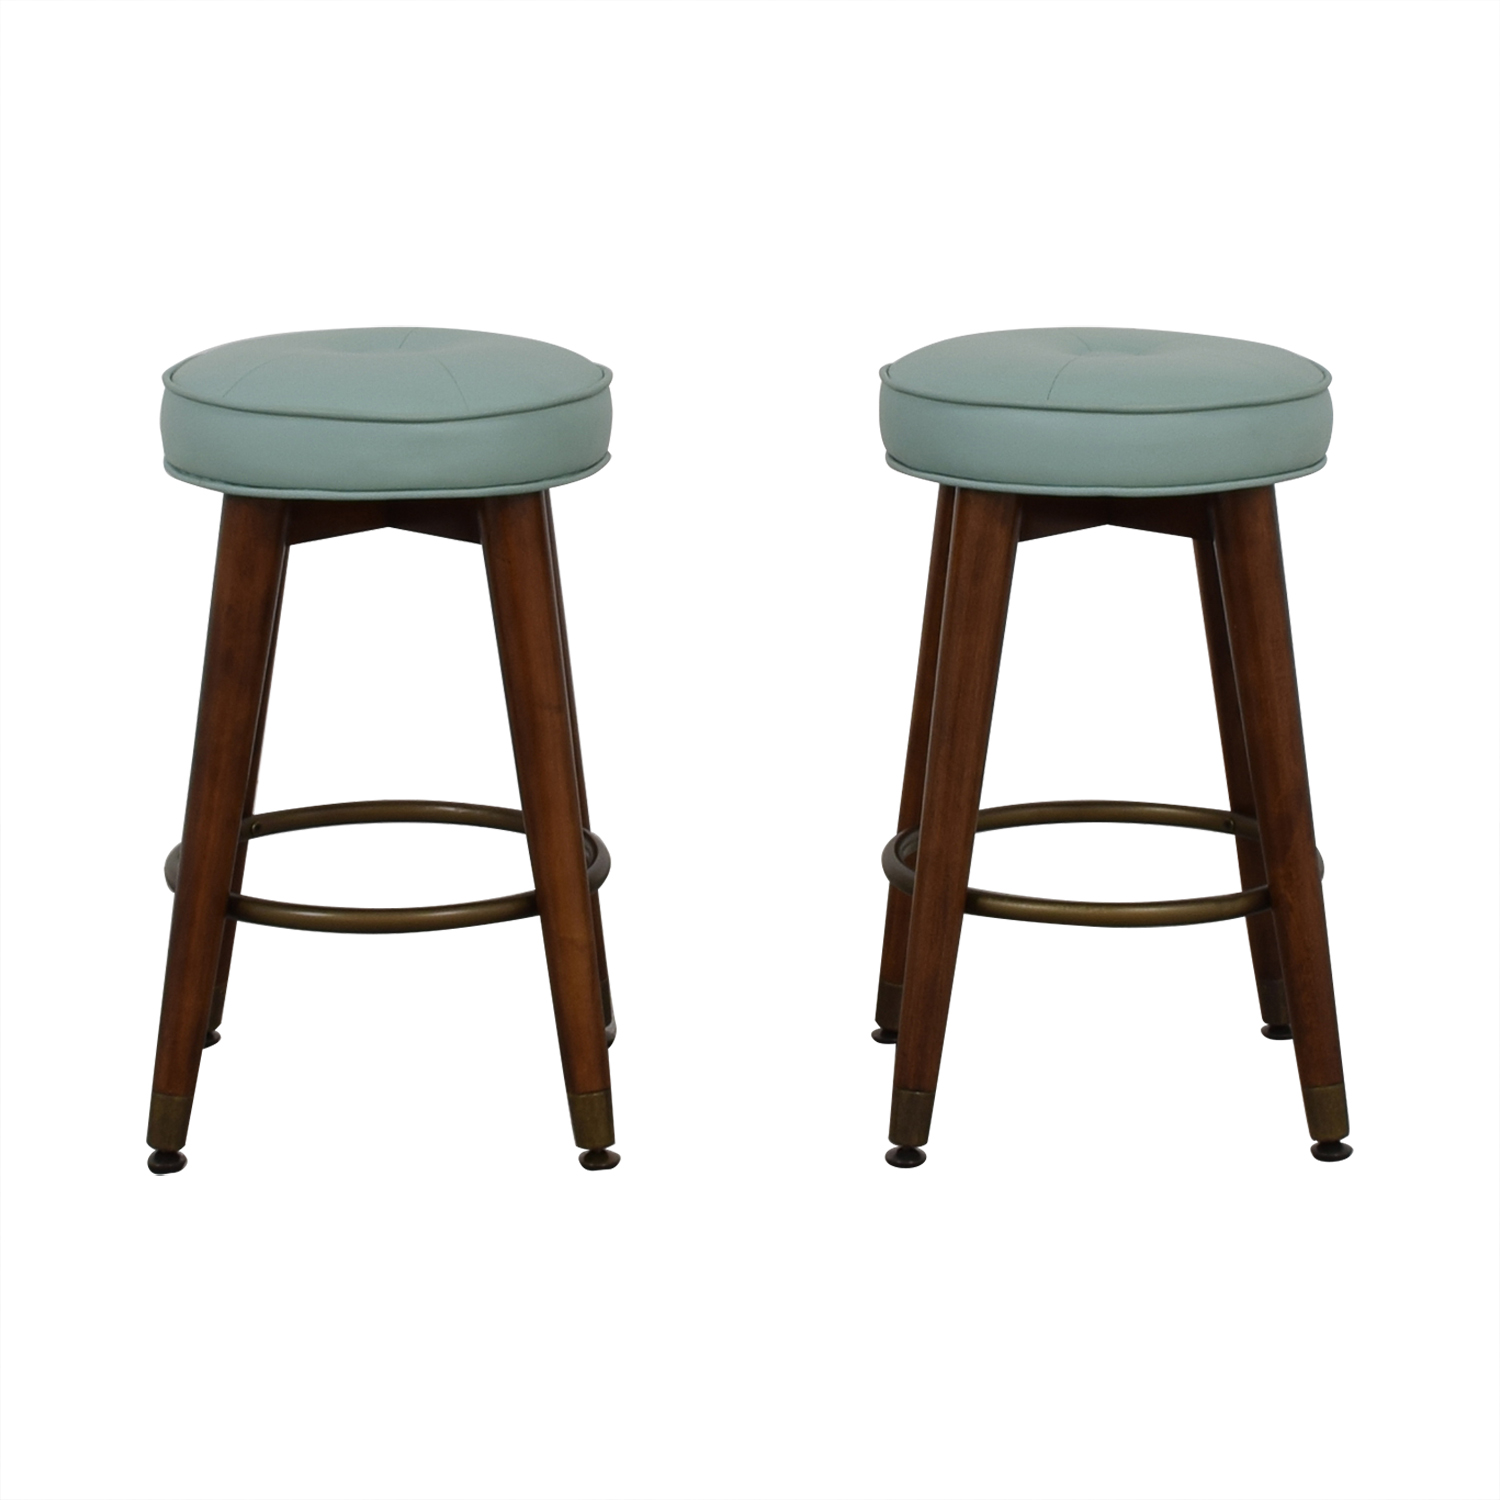 Teal and Wood Stools Stools